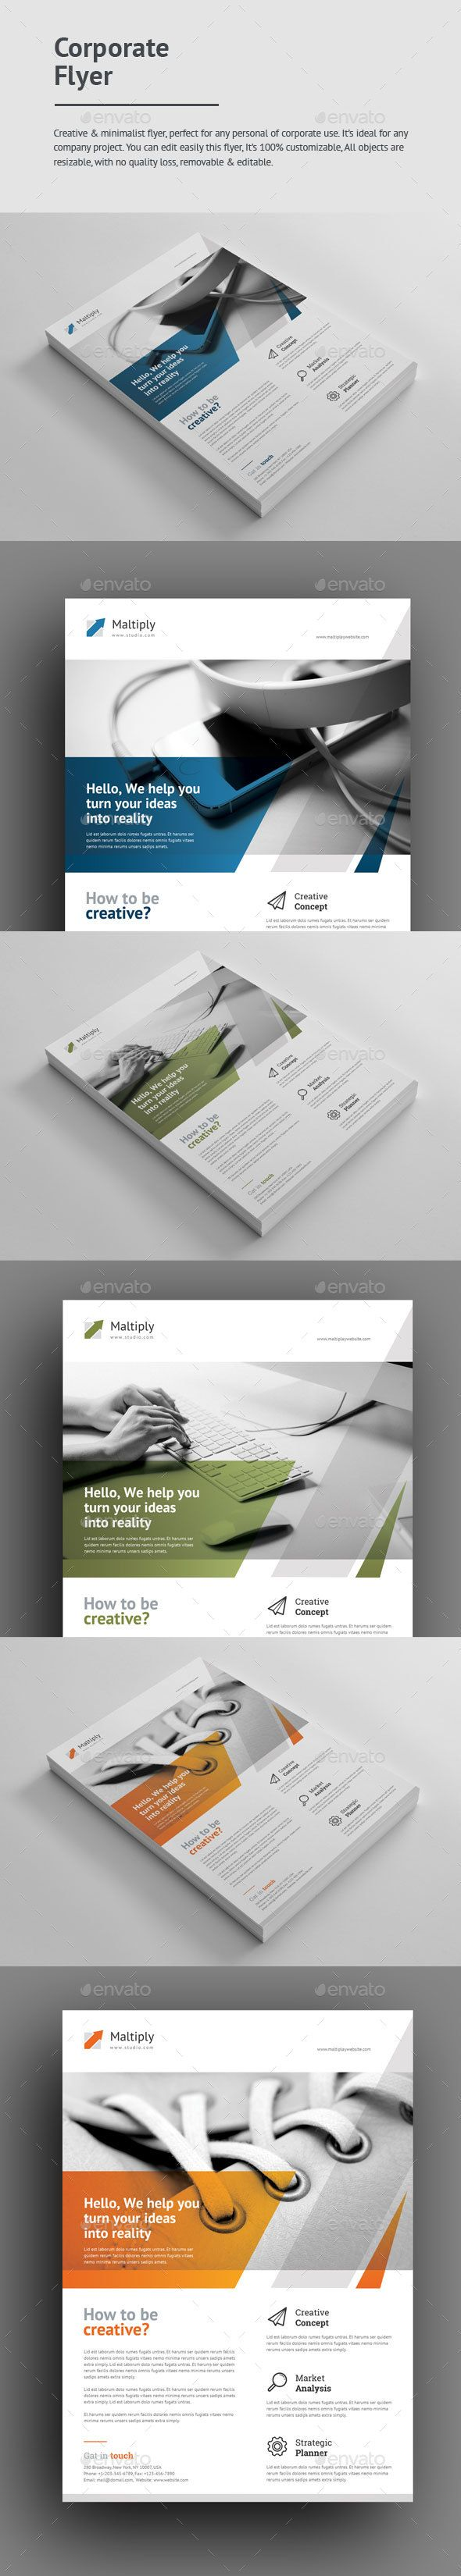 Corporate Flyer Psd Template Product Ad Download Https